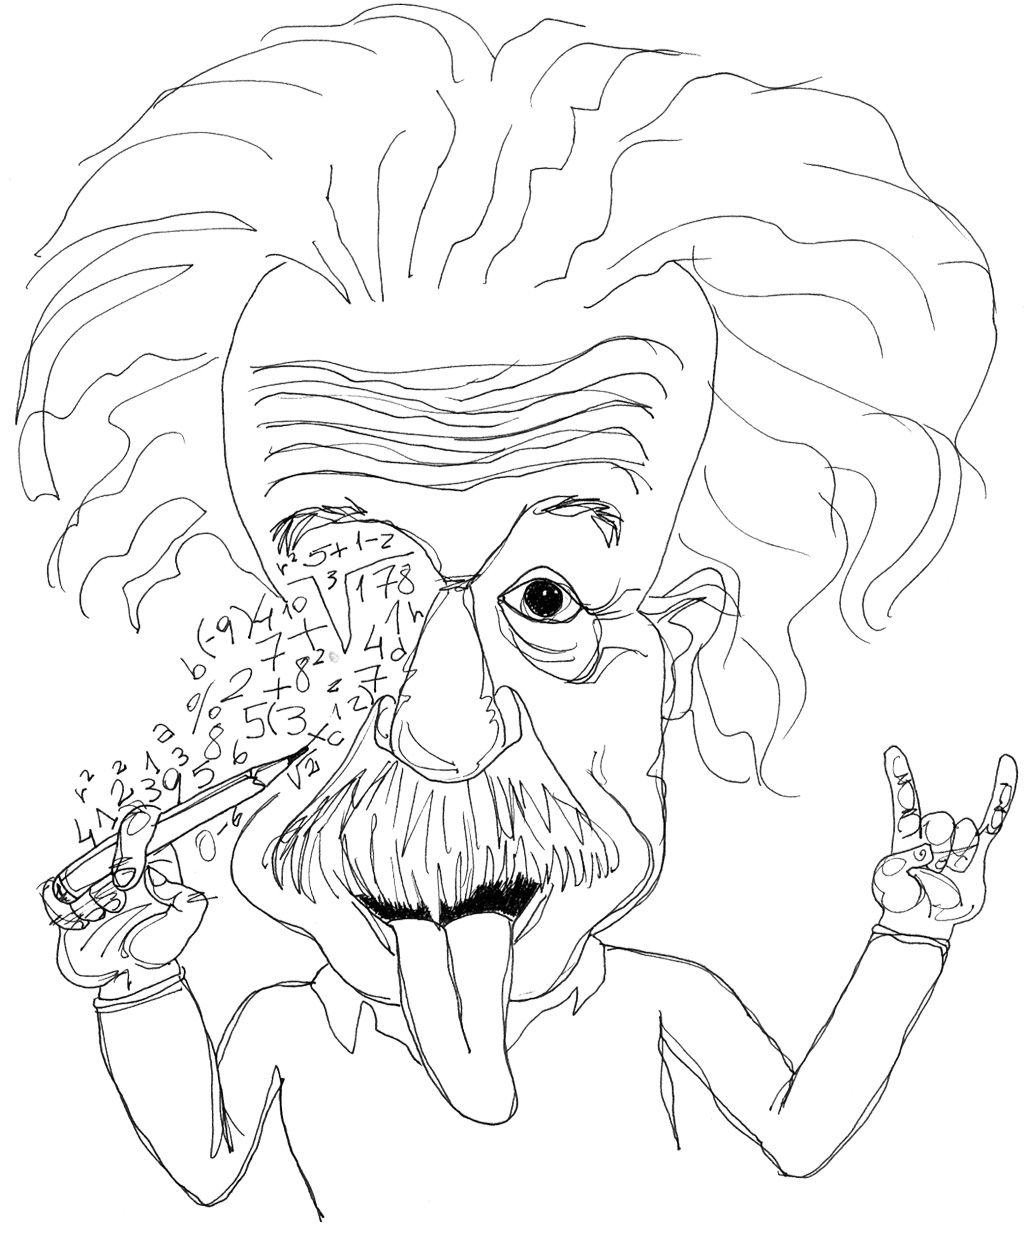 Sketch albert einstein coloring book kids coloring pages